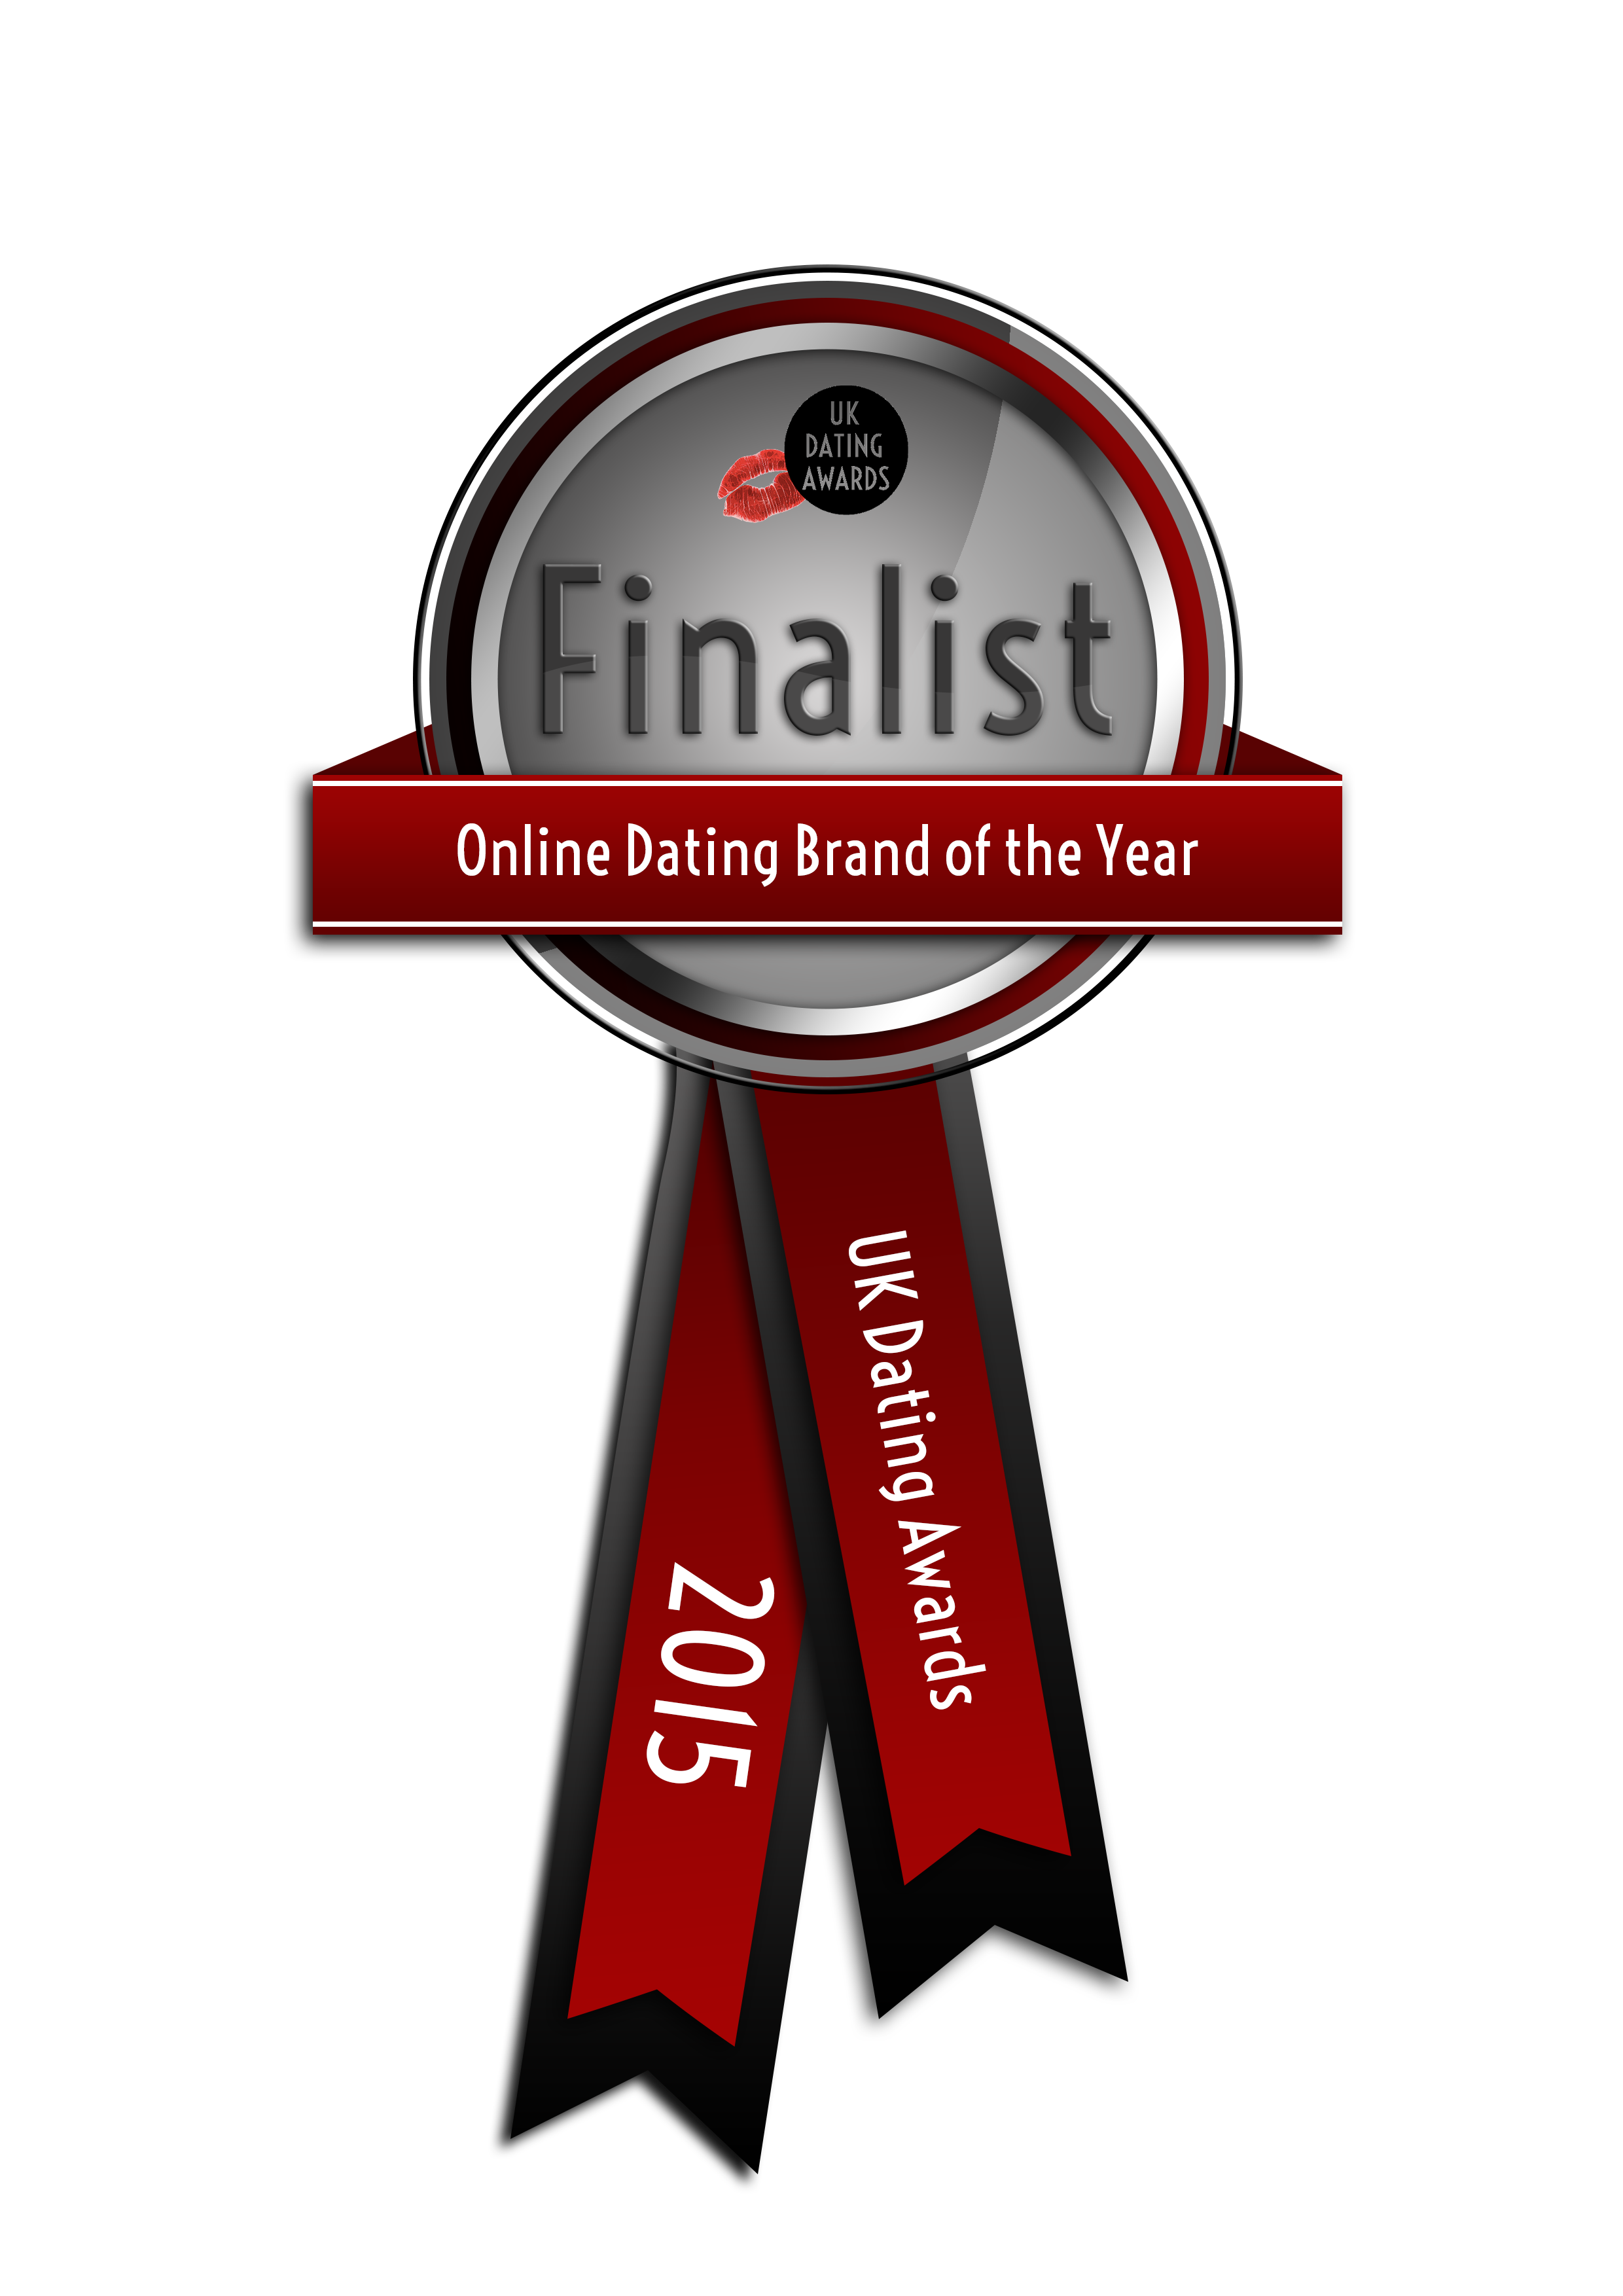 Online dating brand of the year